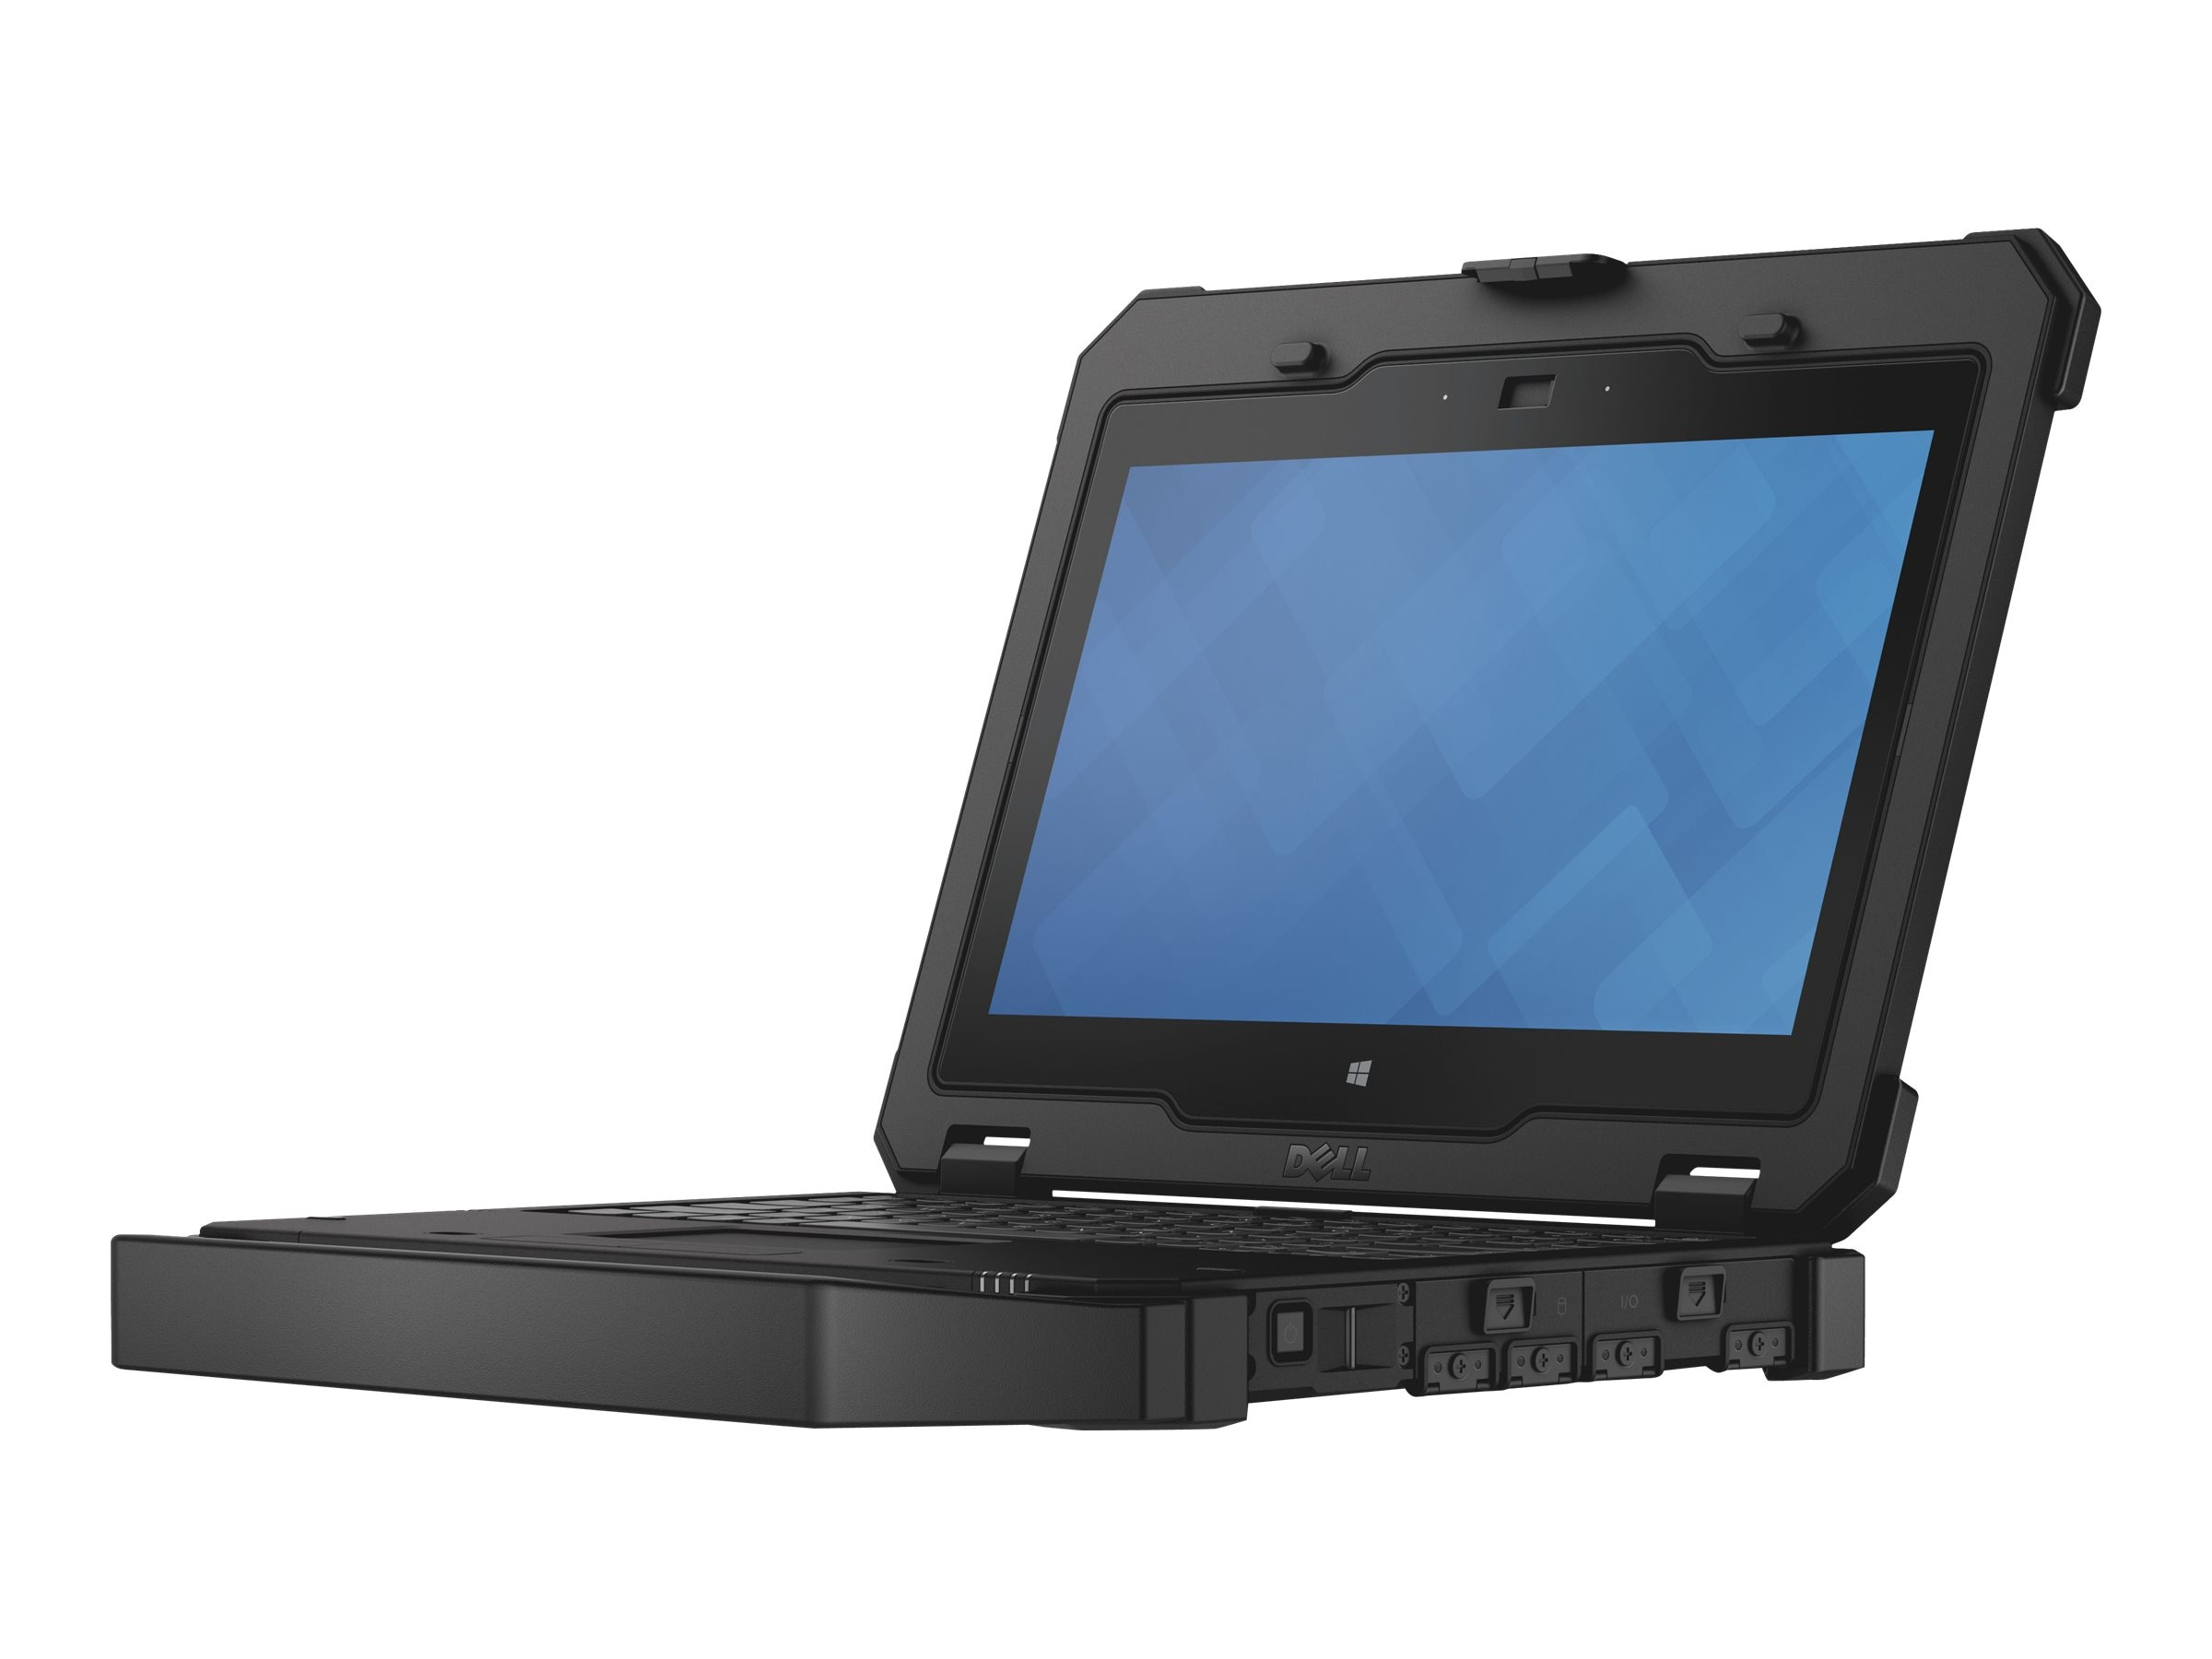 Dell Latitude 12 Rugged Extreme 7214 2.4GHz Core i5 11.6in display